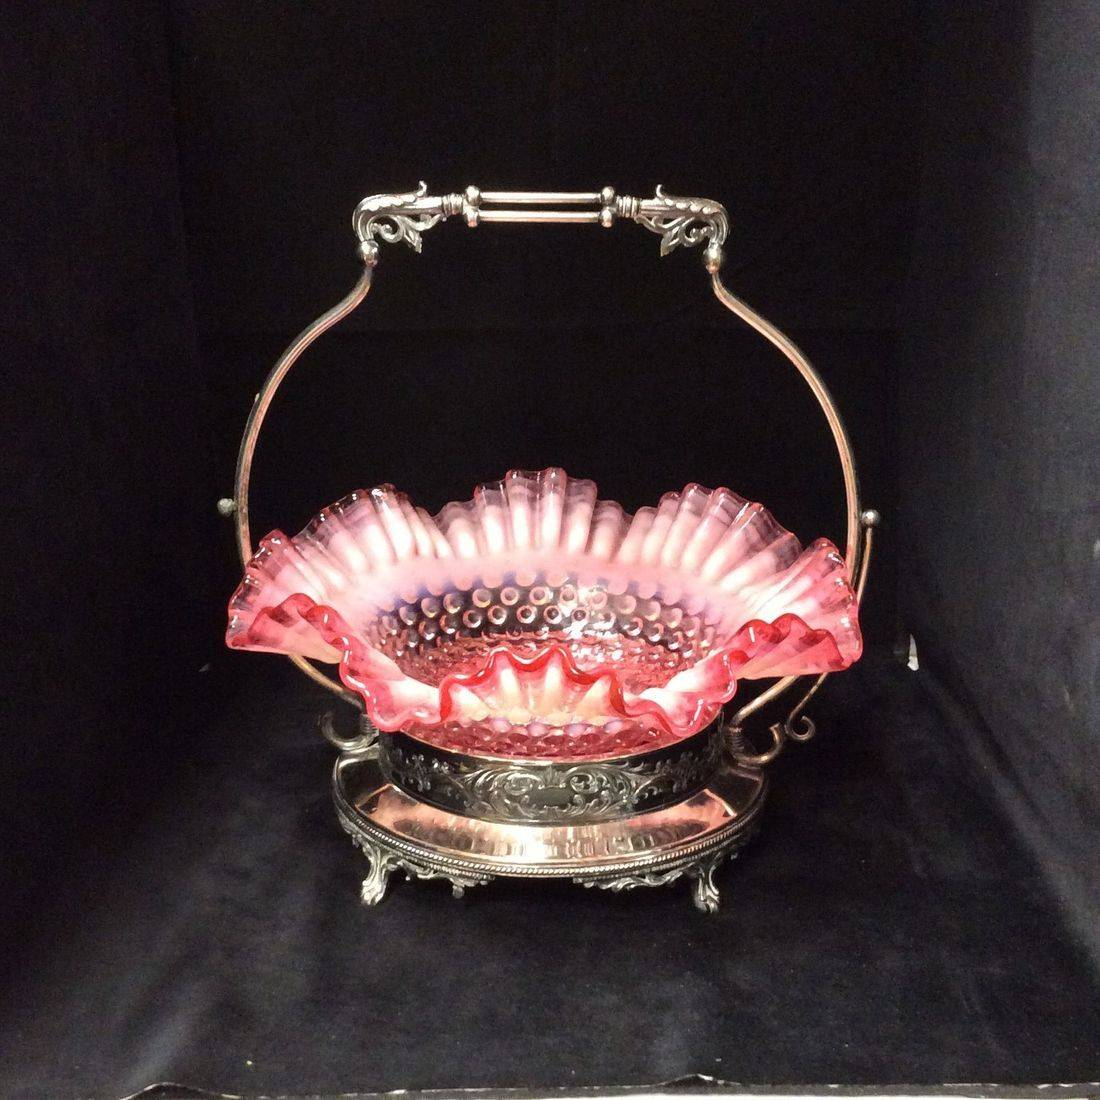 Very Early 1900's Southington Silver Plated Bridal Basket w/Early Fenton Hobnail Double Crimp Opalescent Cranberry Bowl   $95.00